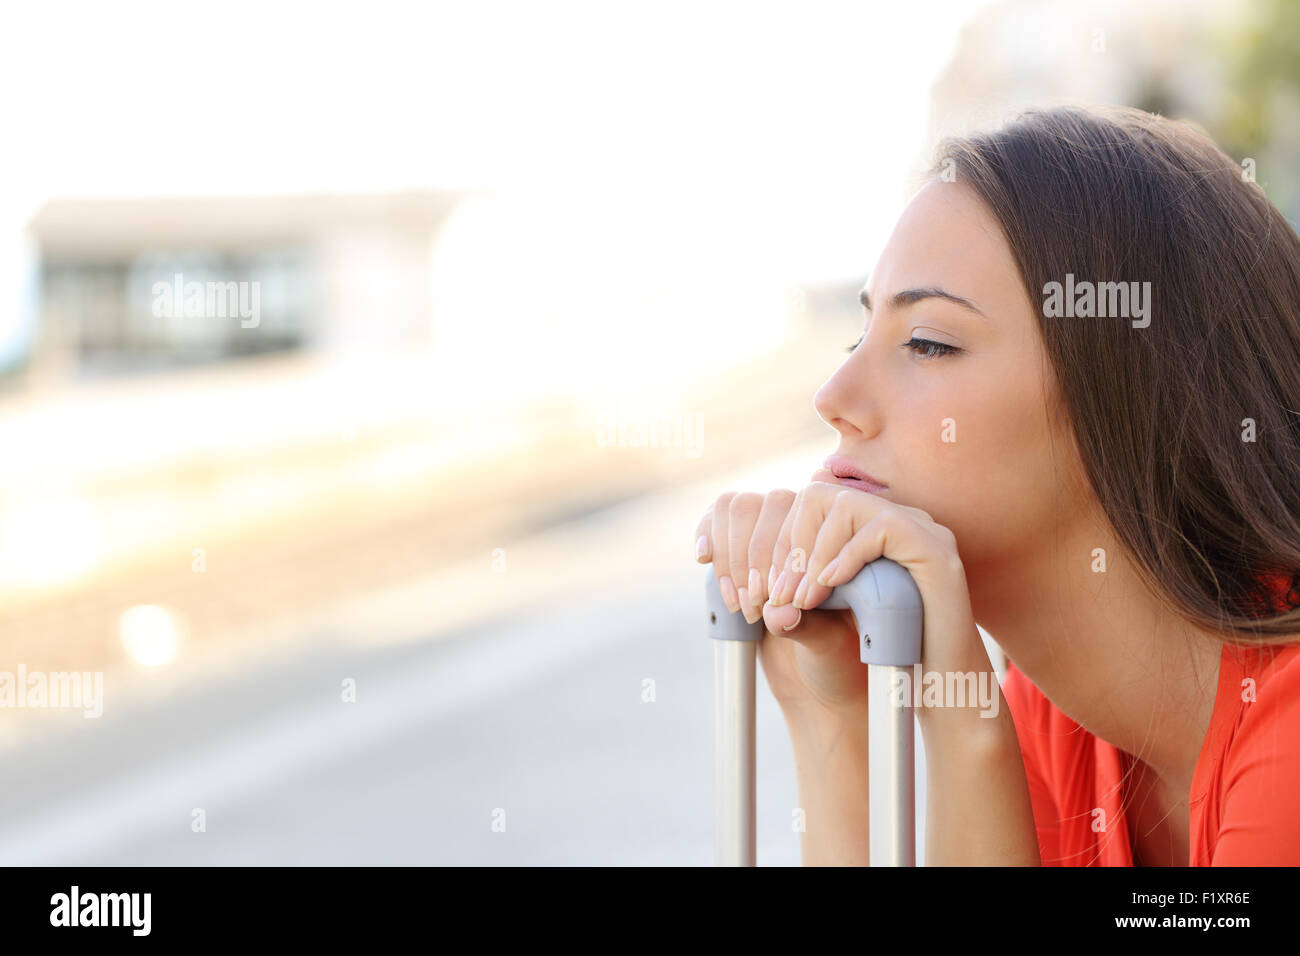 Bored woman waiting for delayed transportation in a train station - Stock Image